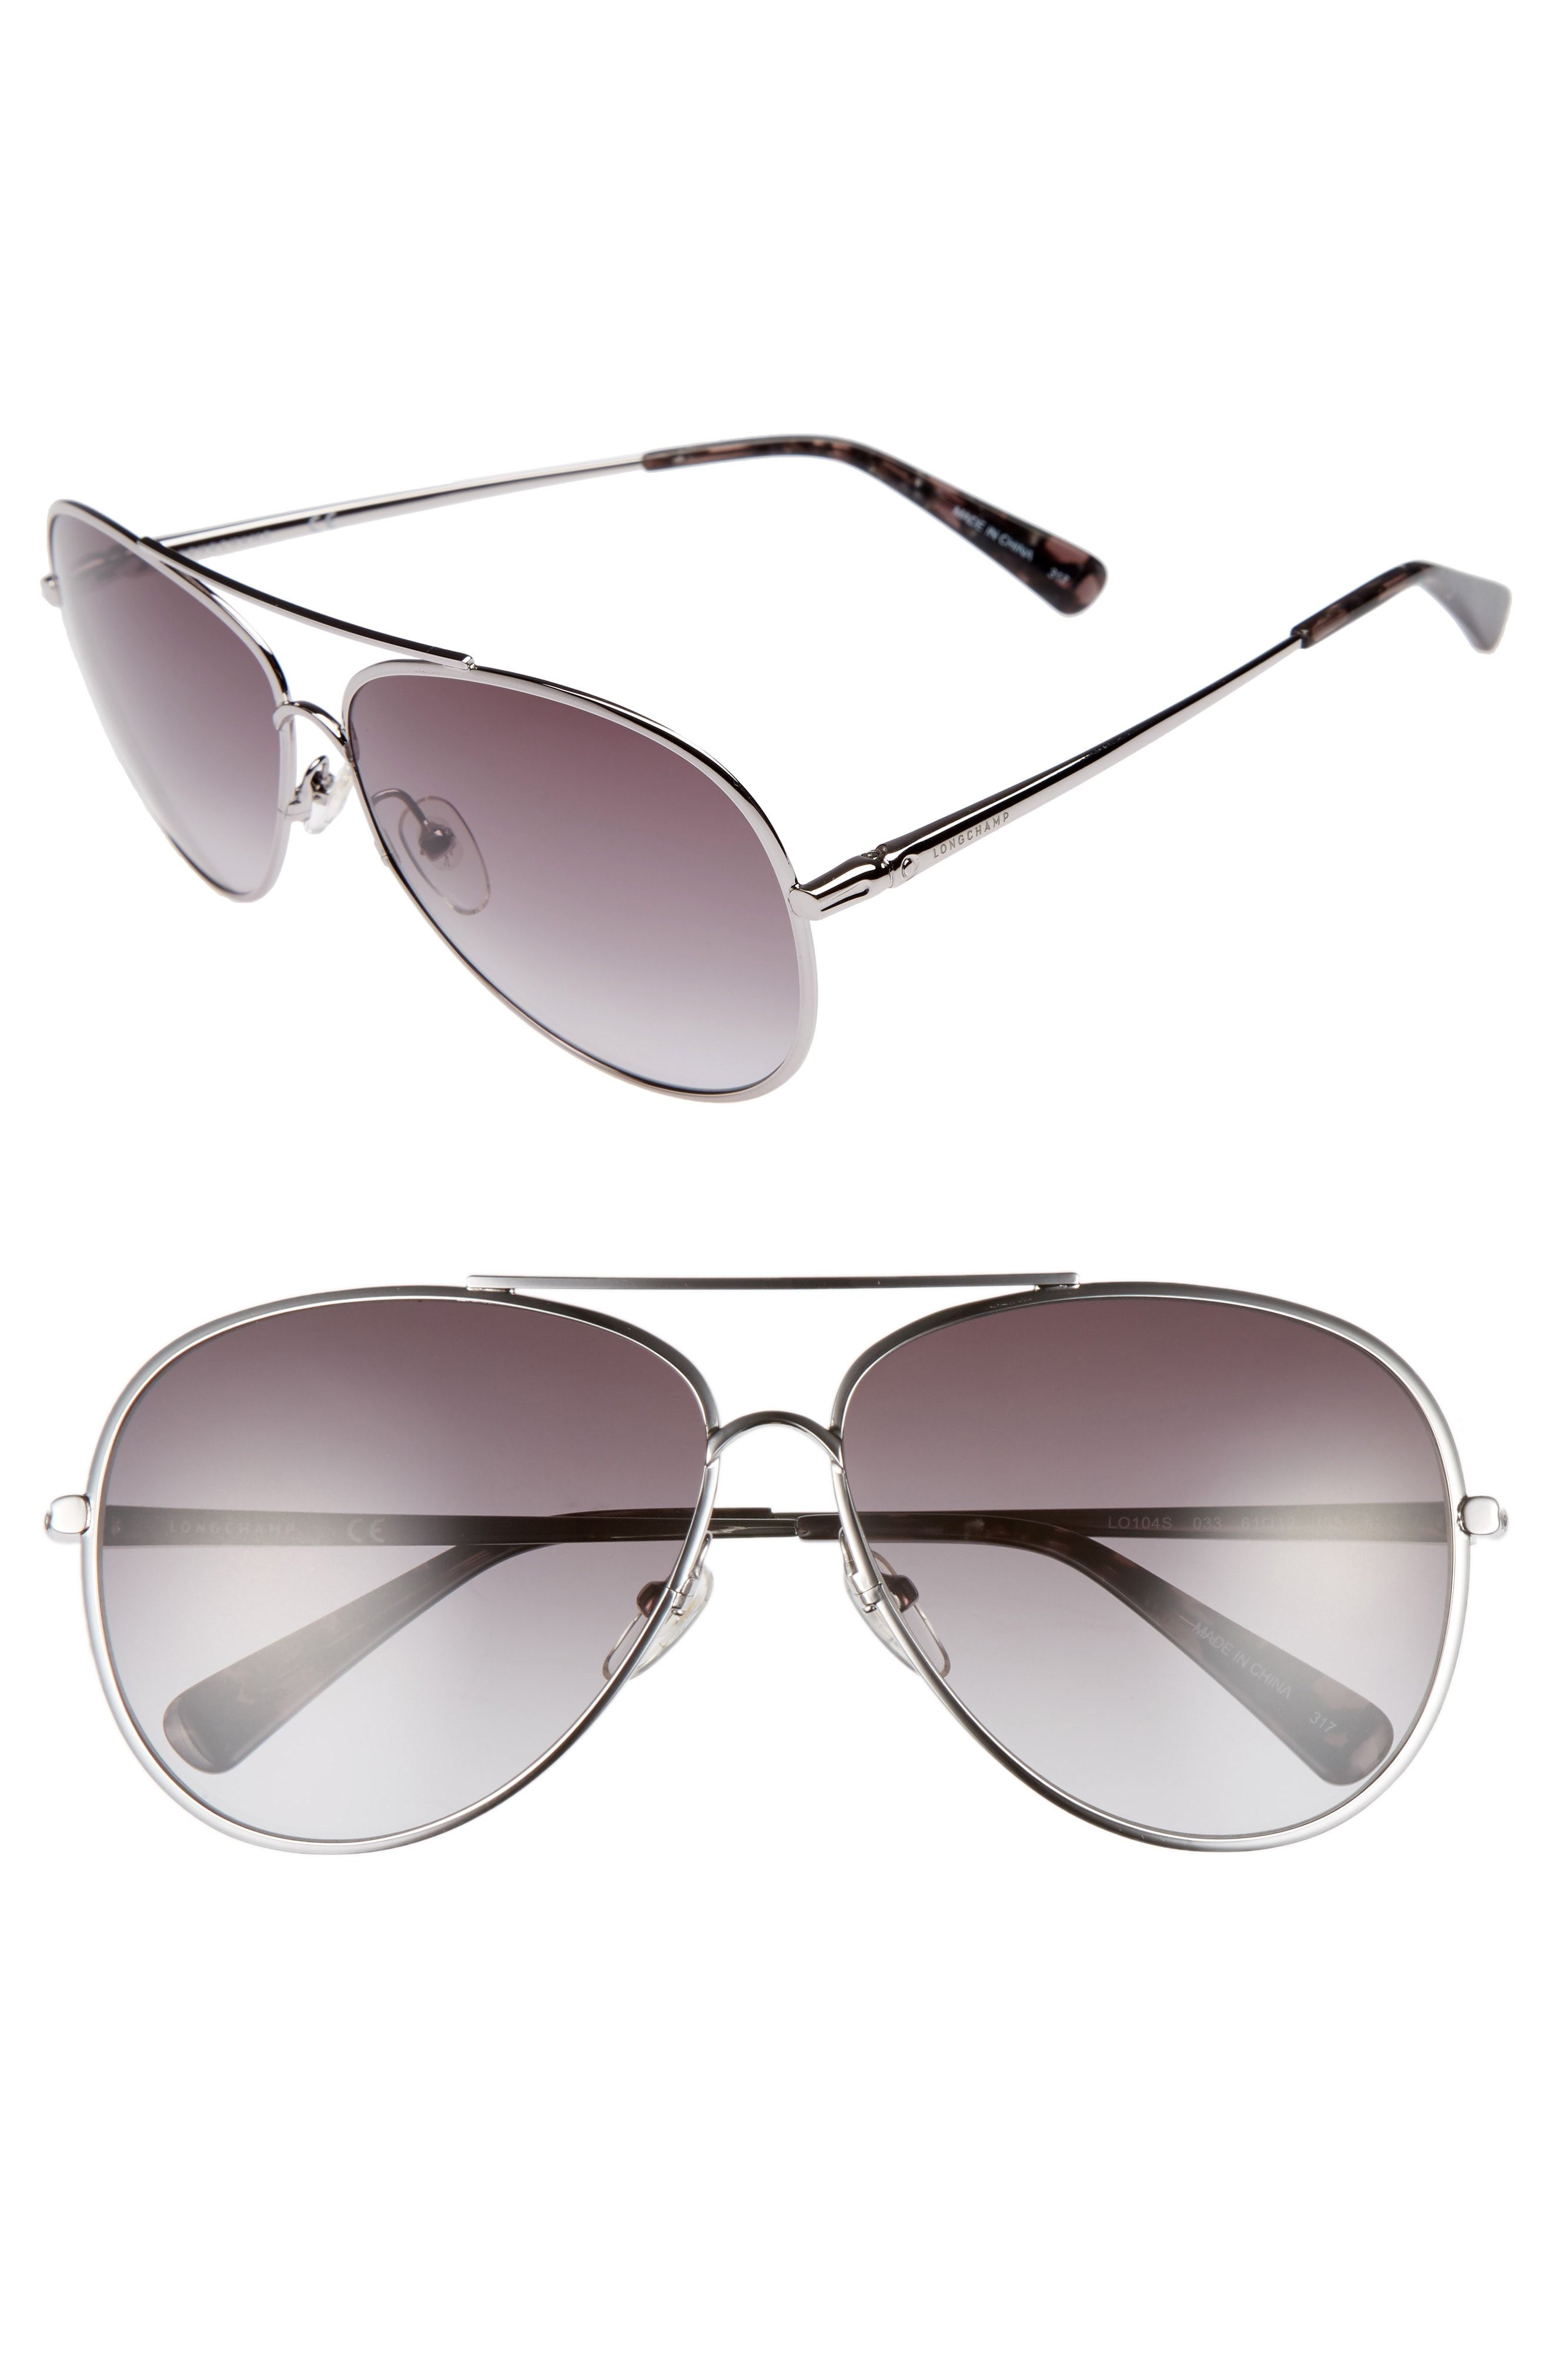 7a84b999e0 Longchamp 61mm Gradient Lens Aviator Sunglasses available at  Nordstrom  -mine